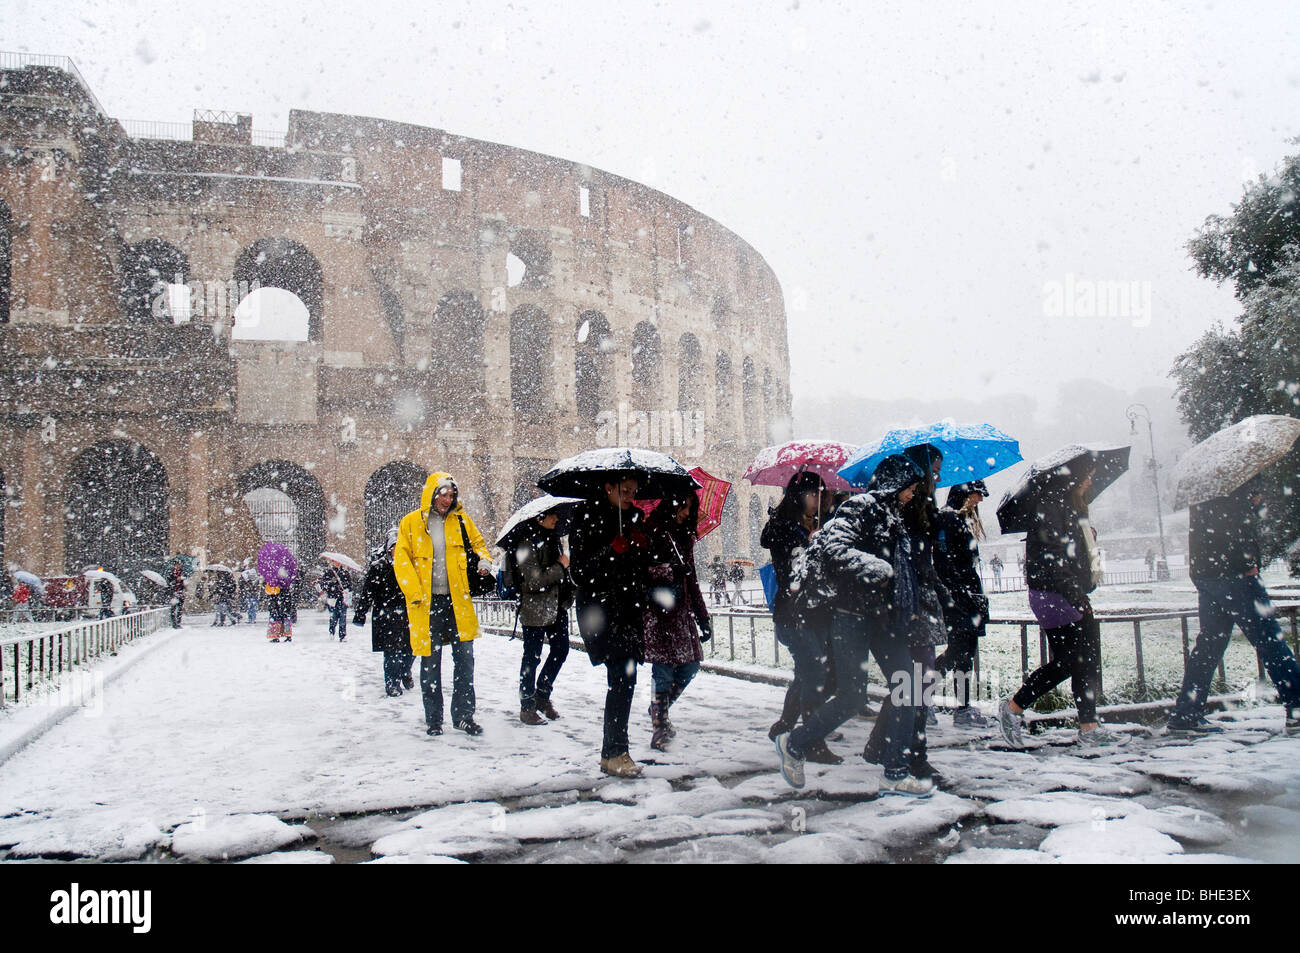 The Colosseum under heavy snow, Rome Italy - Stock Image